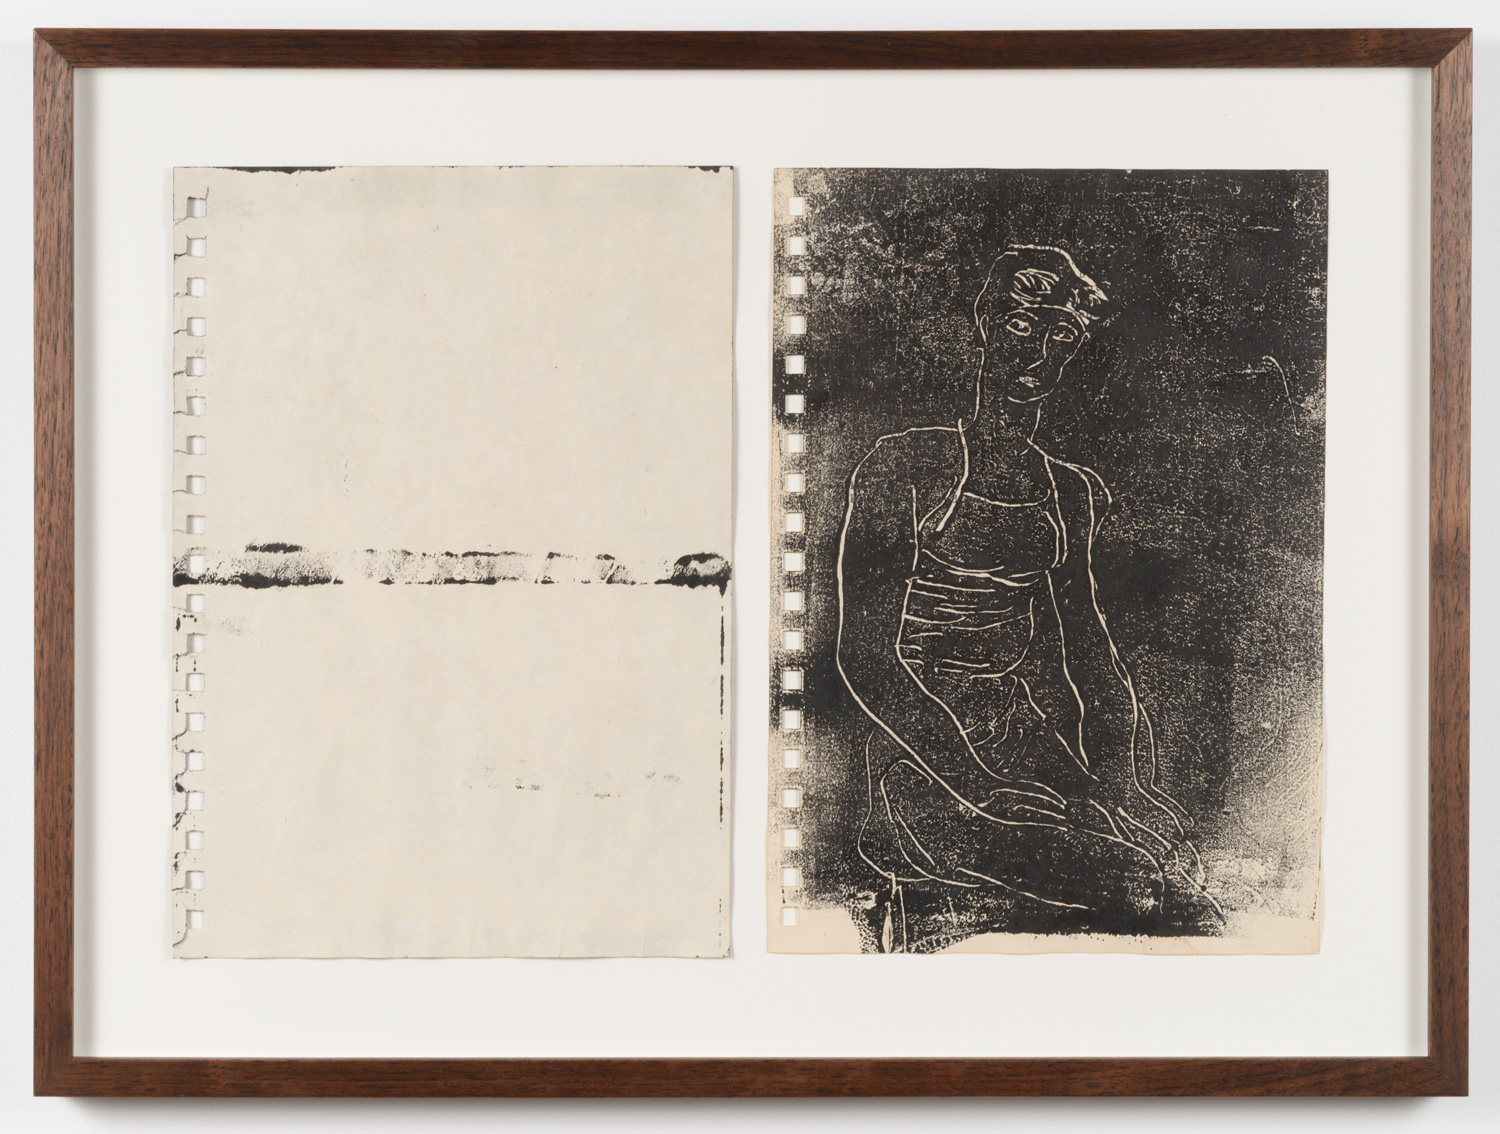 Frank J. Stockton  Untitled, Swimmer Series,  2017 Monotype with coffee treated paper, 7 x 10in. each